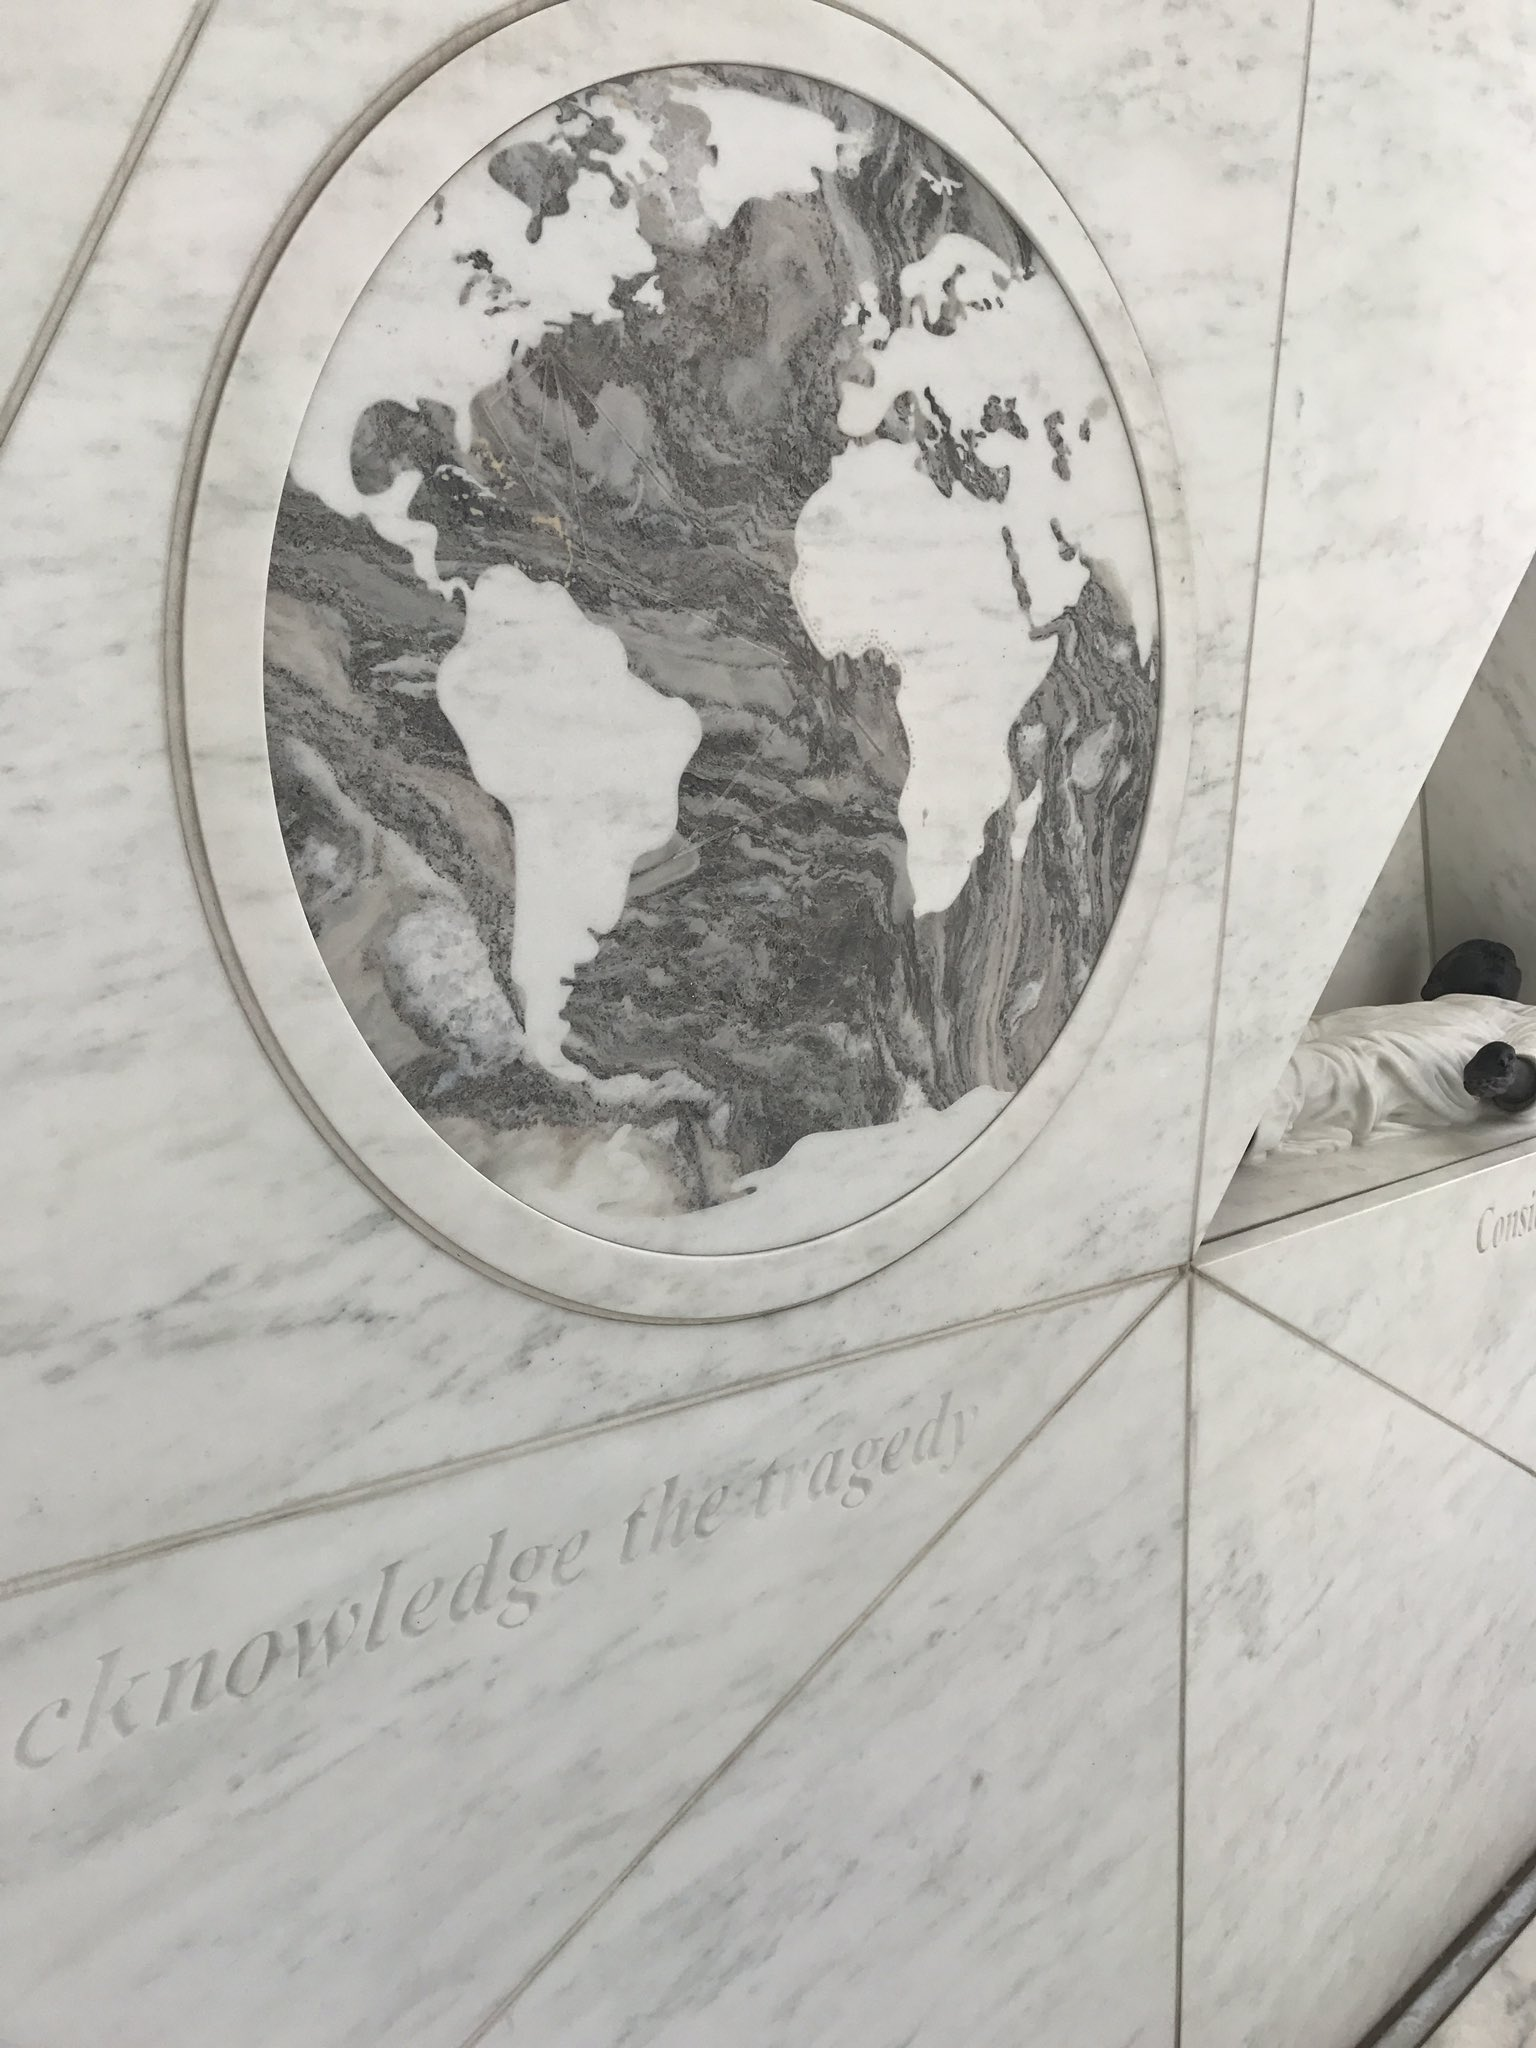 Memorial for the TransAtlantic Slave Trade at the United Nations https://t.co/ehc7UC2n6I